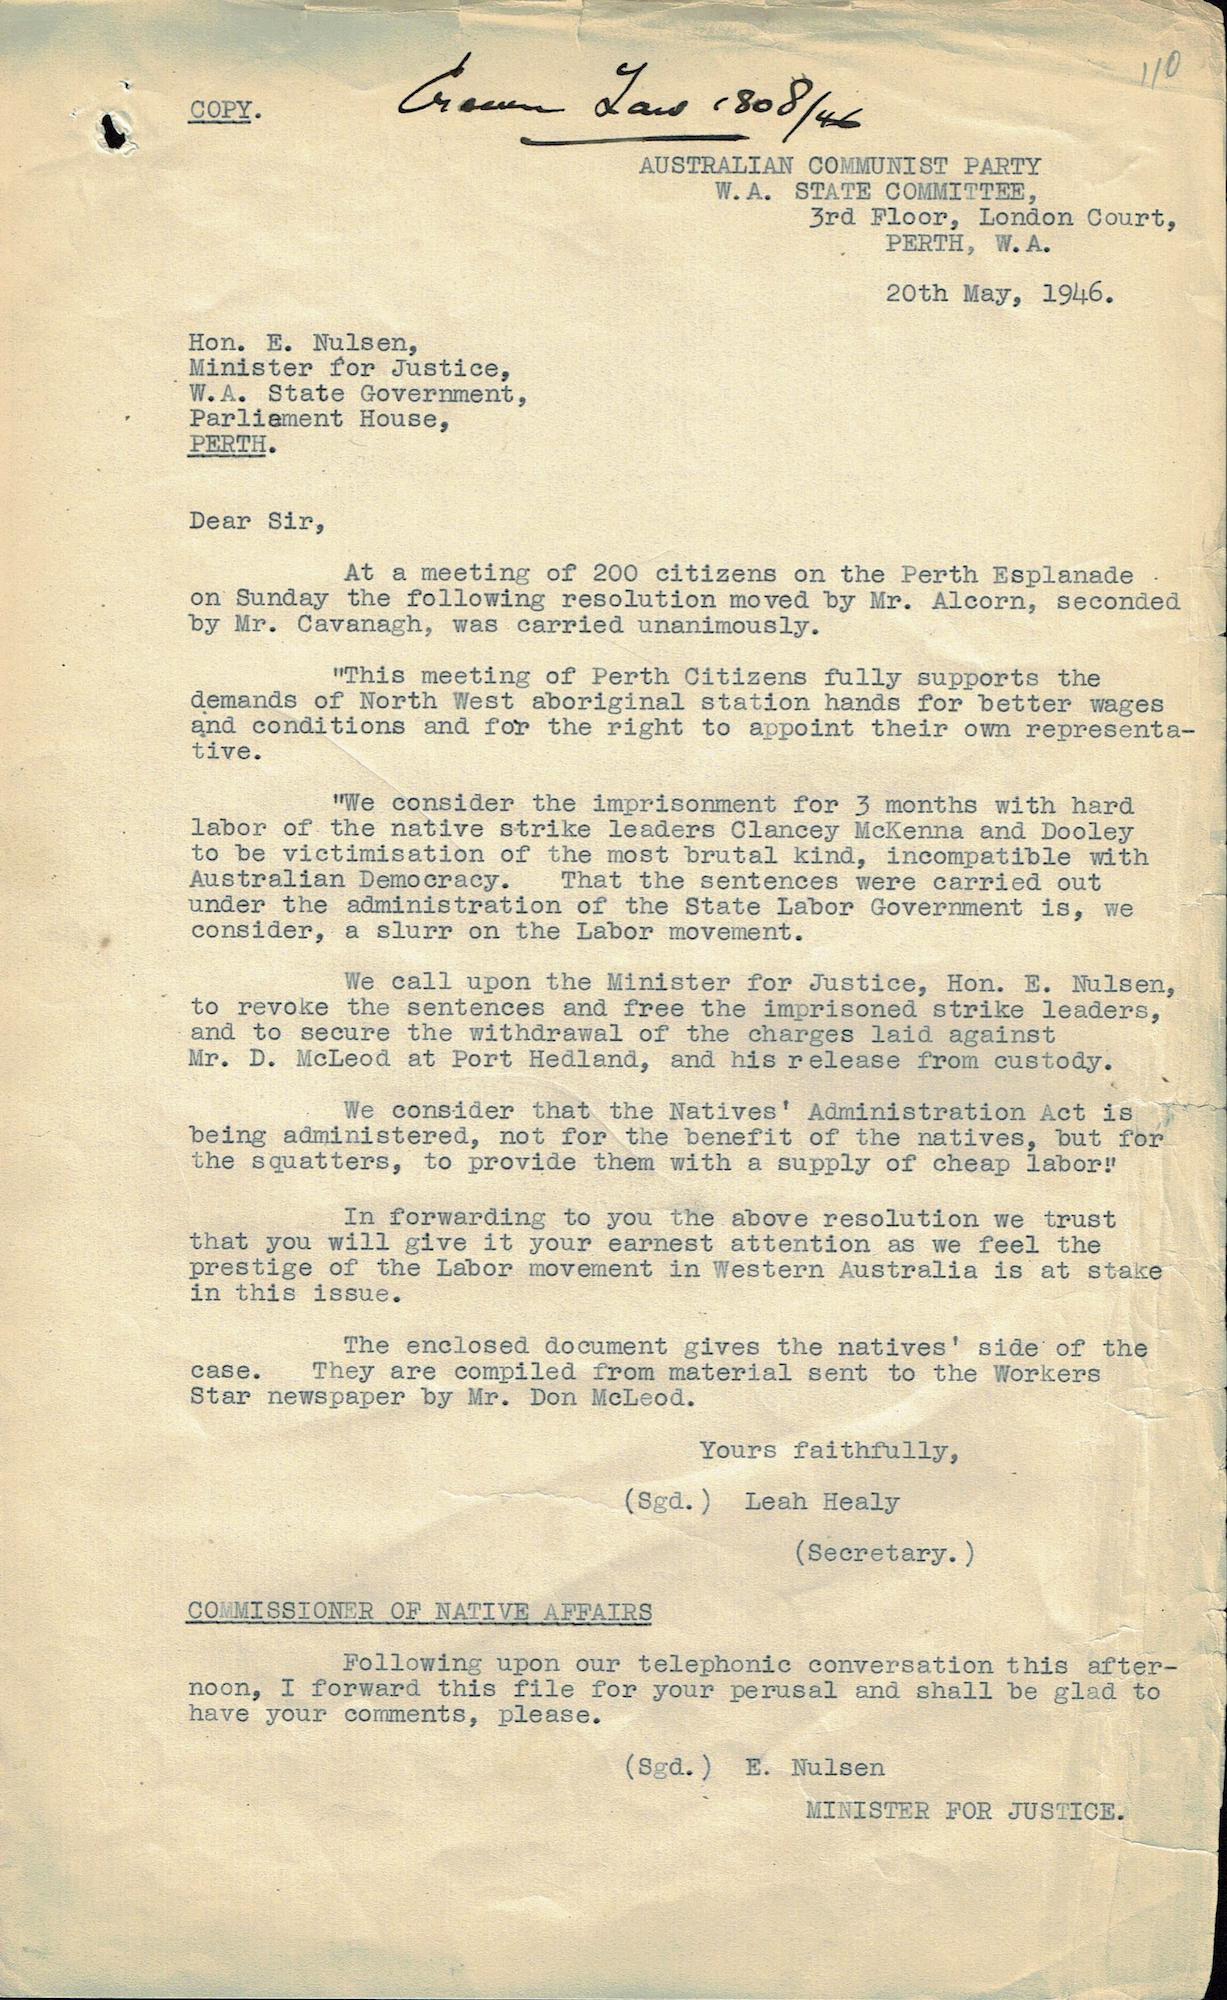 Leah Healy, Secretary, Western Australian State Committee, Australian Communist Party, to Minister for Justice Emil Nulsen, 20 May 1946